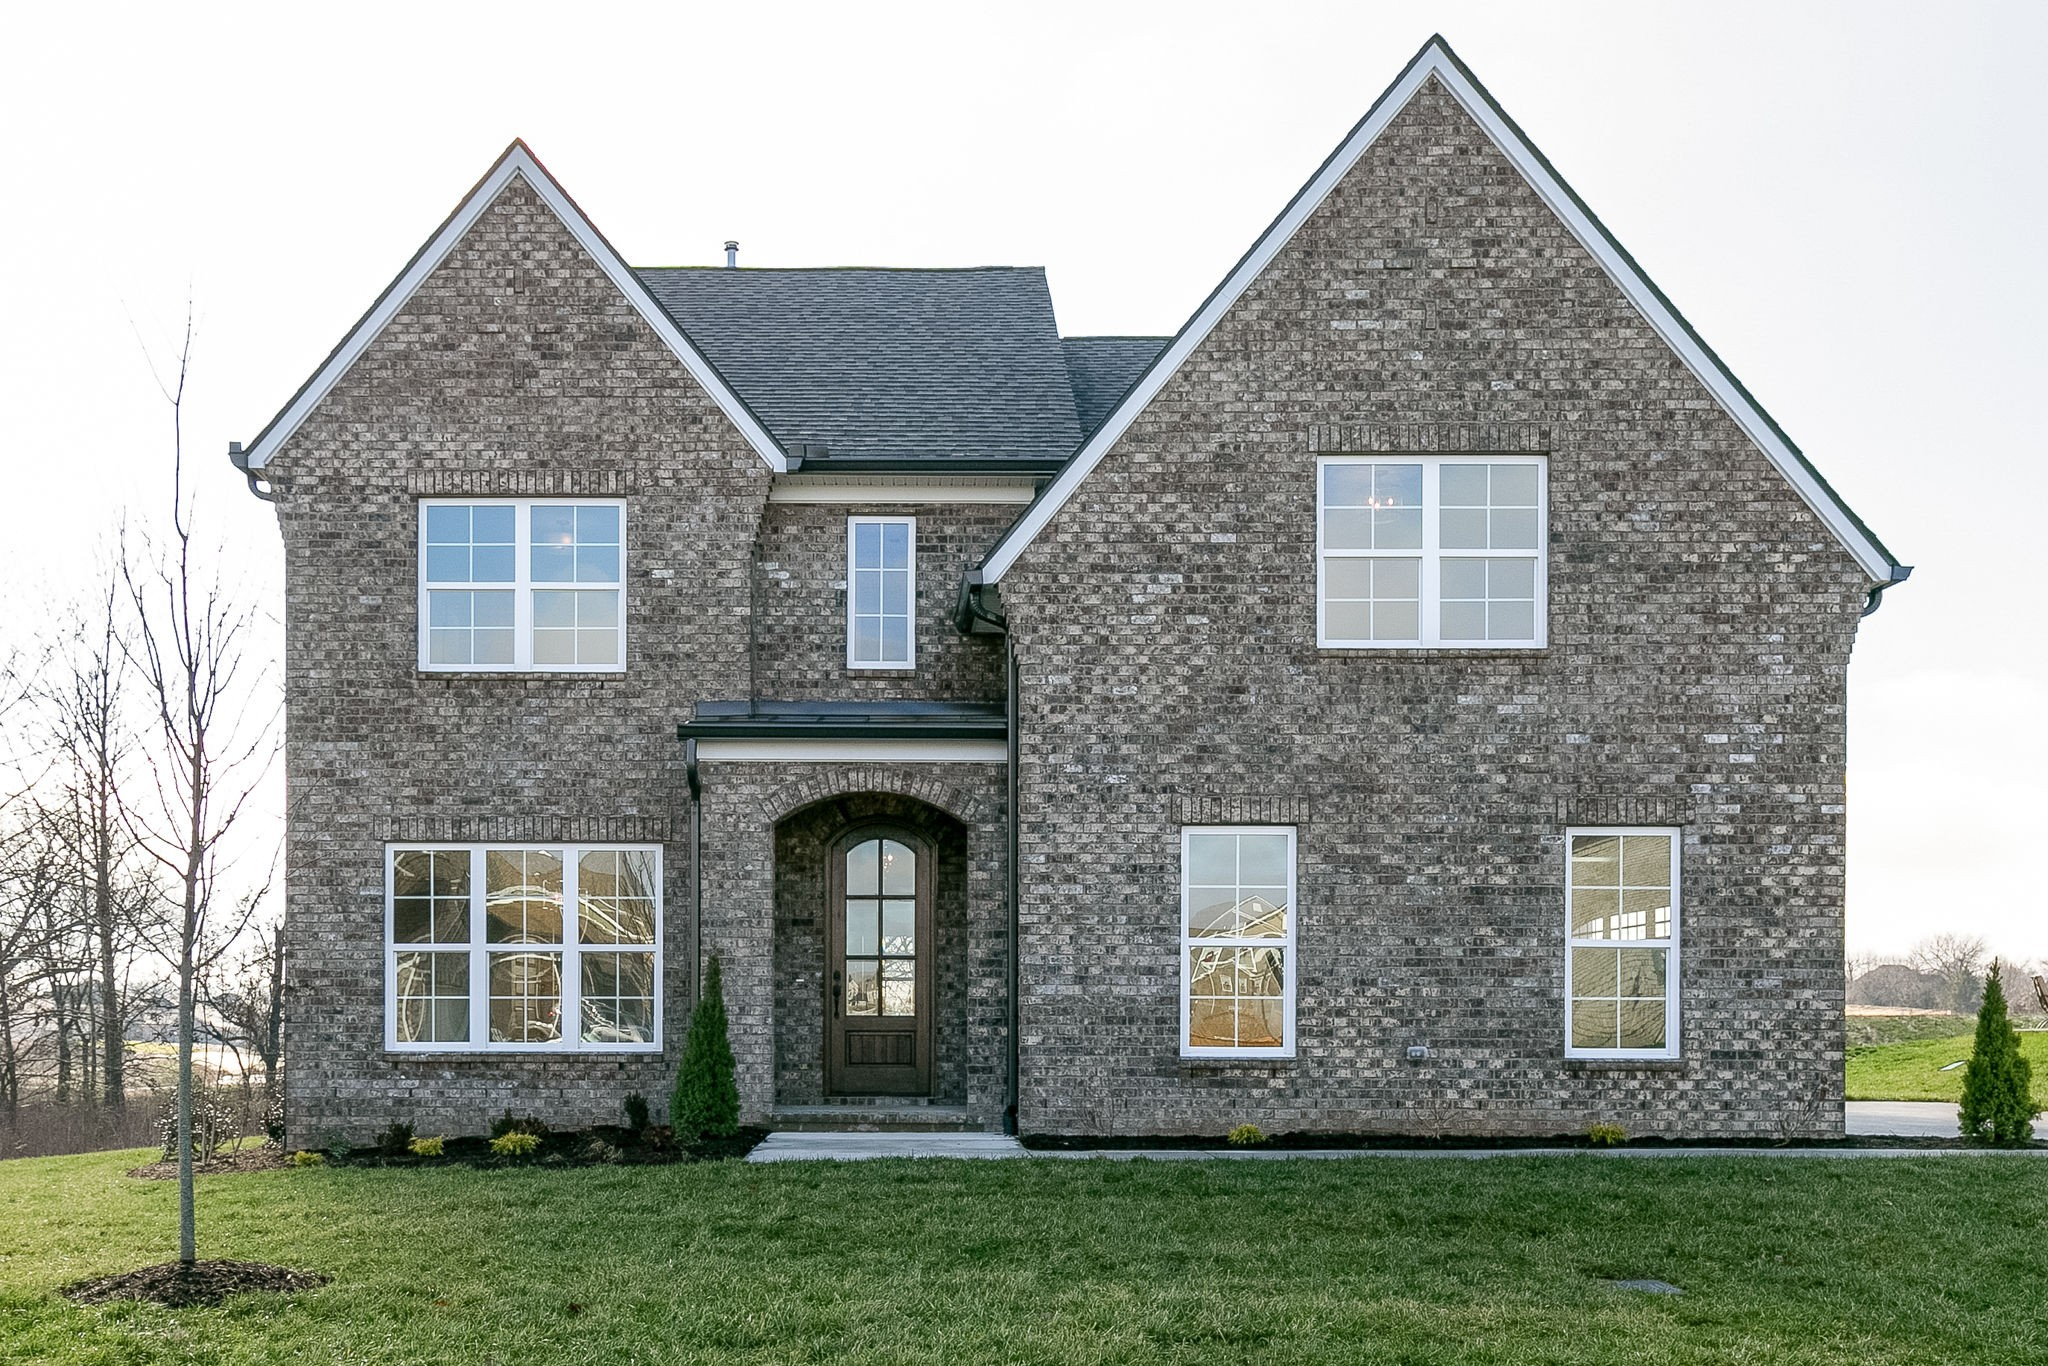 2033 Friendship Dr Lot 324, Spring Hill, TN 37174 - Spring Hill, TN real estate listing